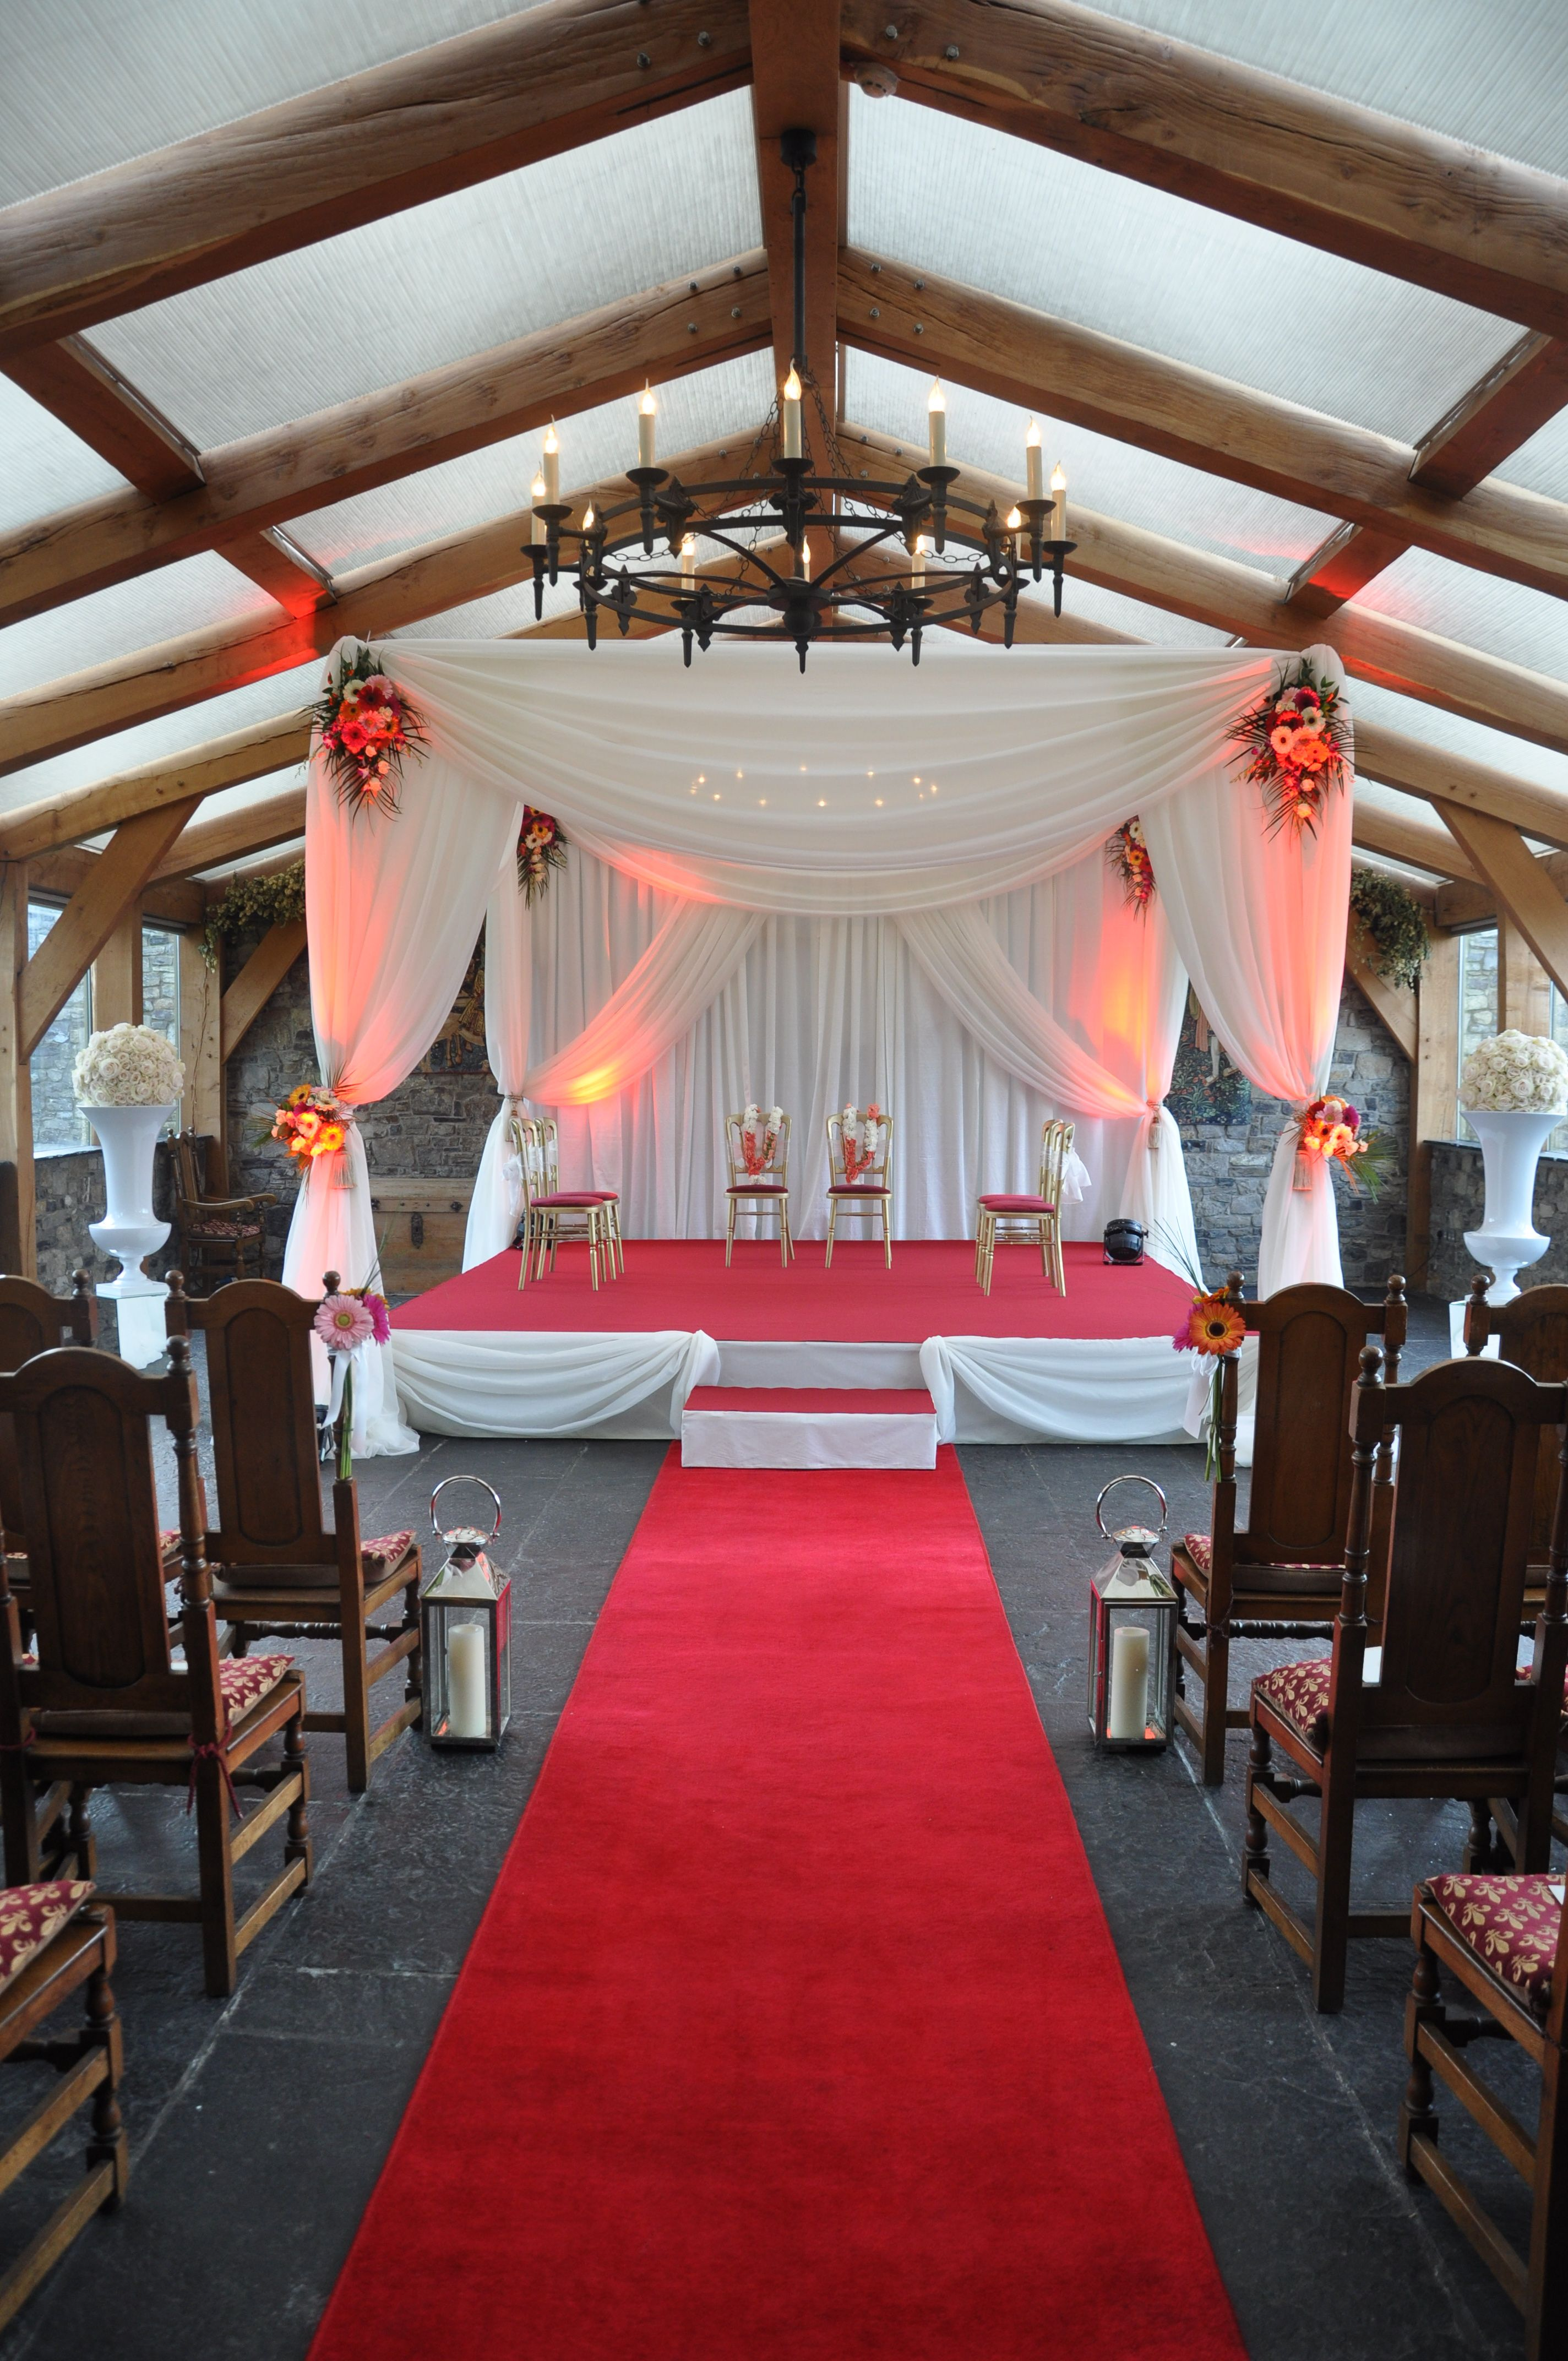 A Stunning Indian Wedding Chuppah Canopy With Red Carpet Aisle Runner Visit Www